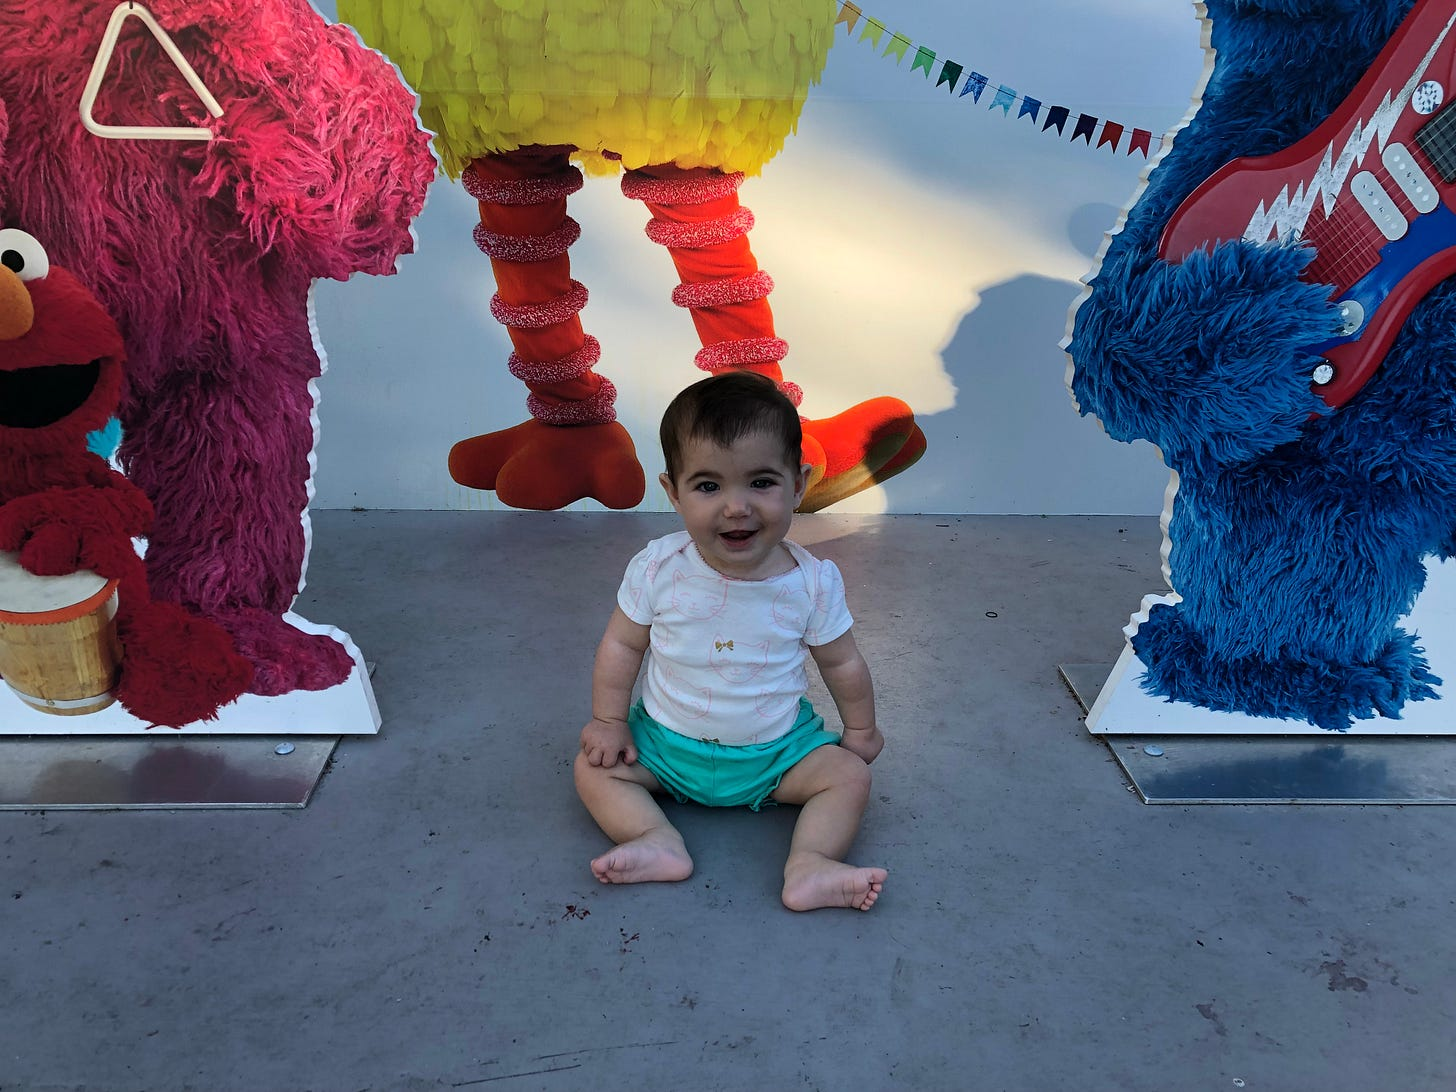 Small baby with a giant smile sits upright between cutout figurines of sesame street characters.